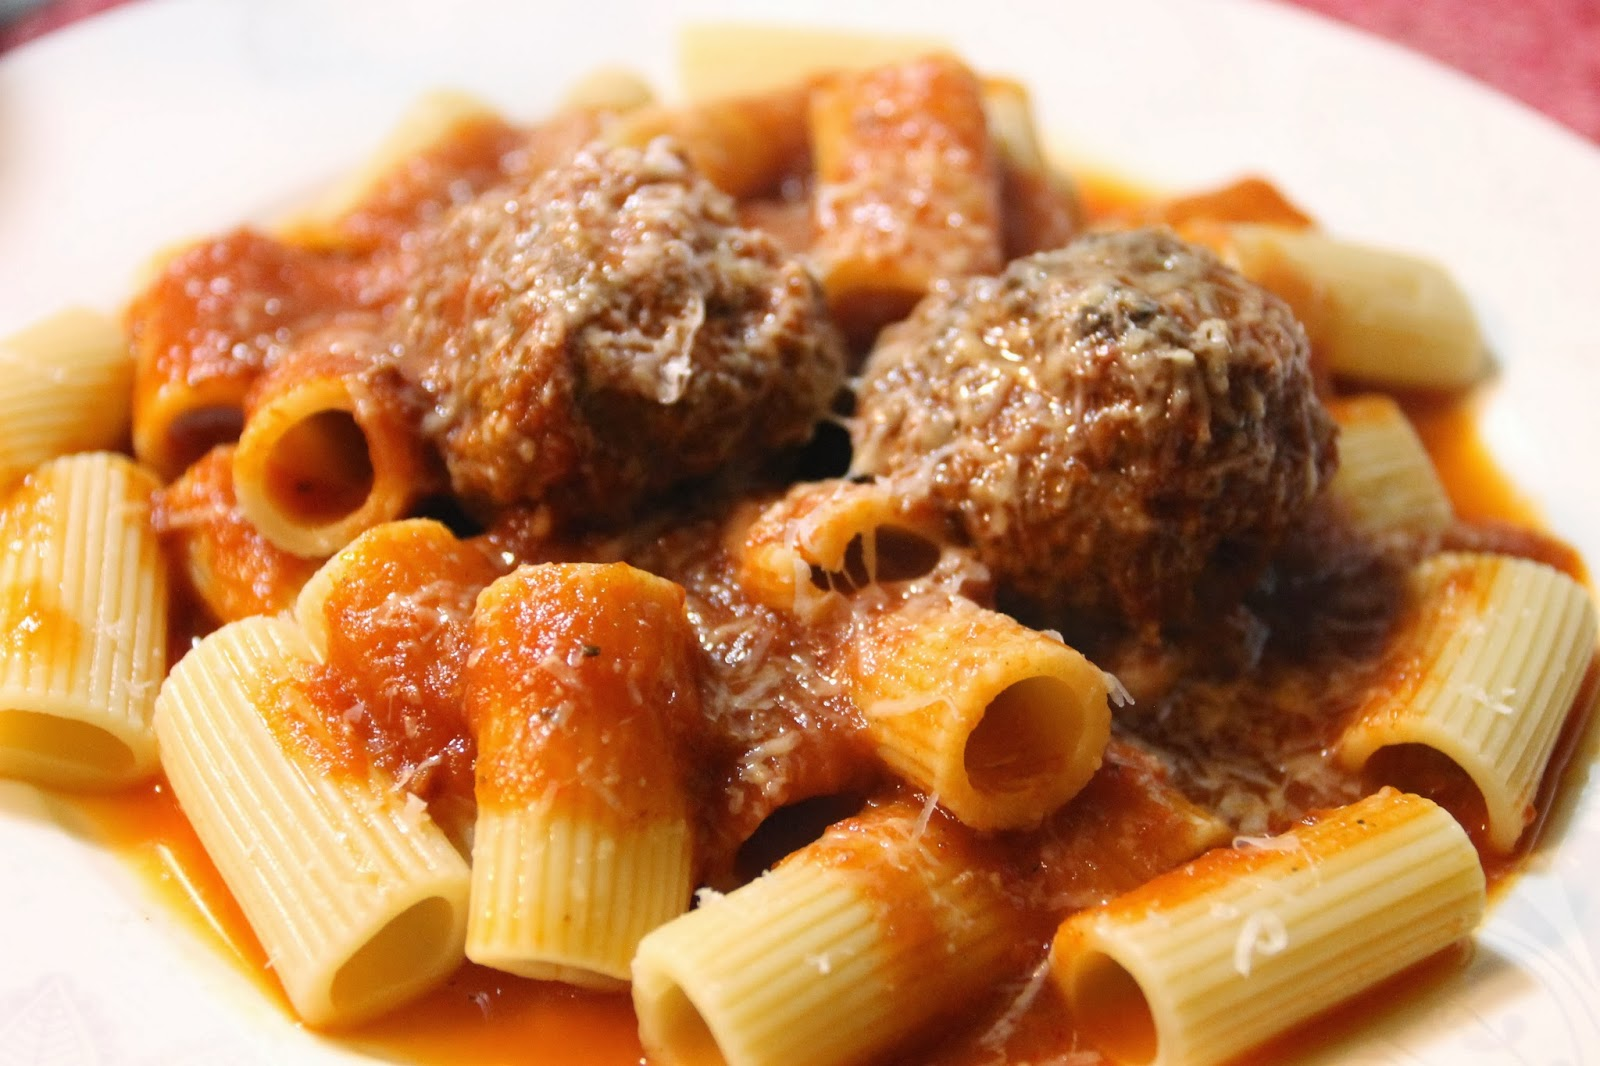 meatballs regular meatballs spicy meatballs or turkey meatballs